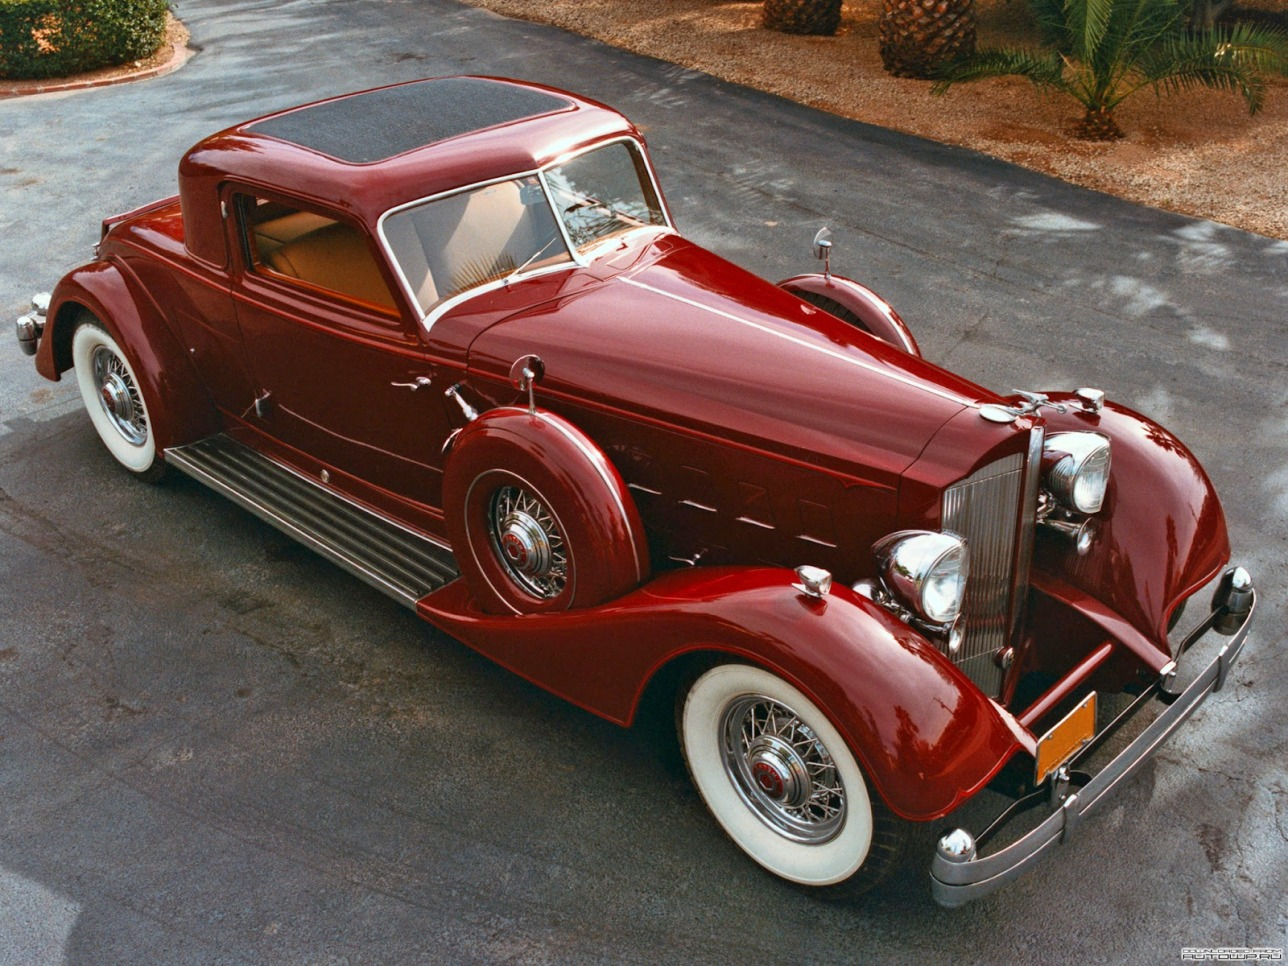 https://disaffectedmusings.files.wordpress.com/2019/02/d7d57-packard-twelve-sport-coupe-dietrich-1933.jpg